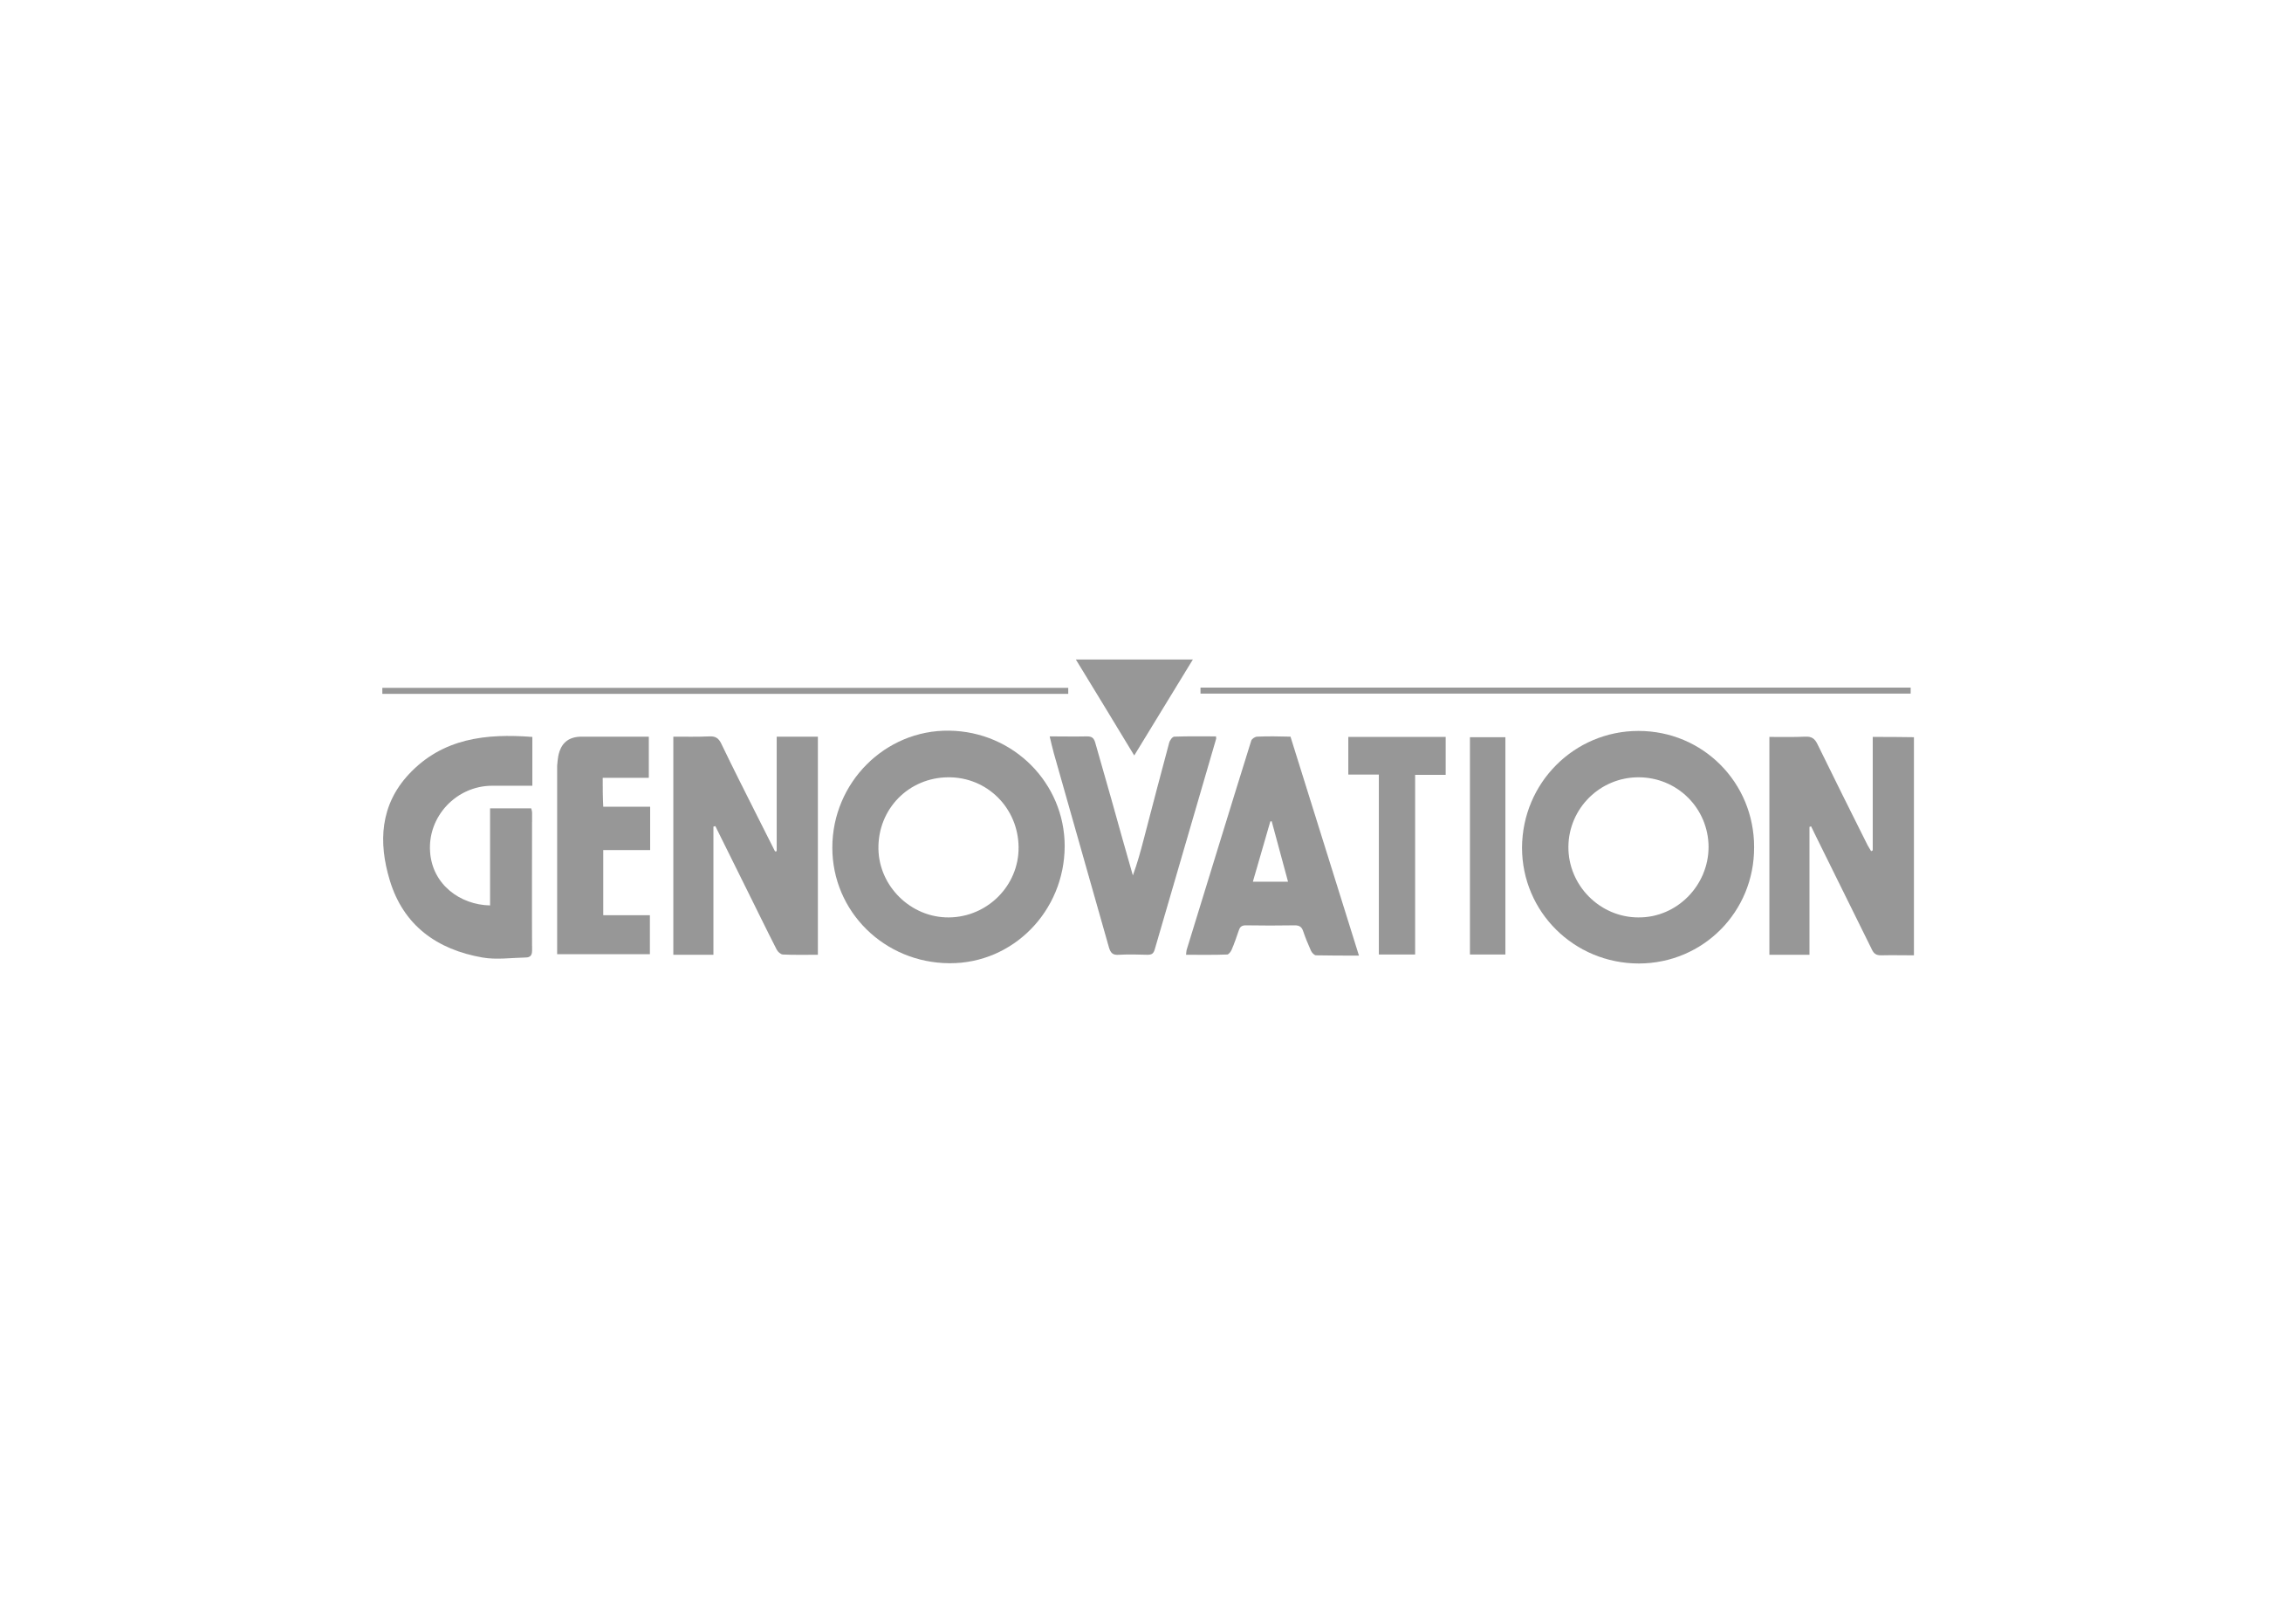 Genovation